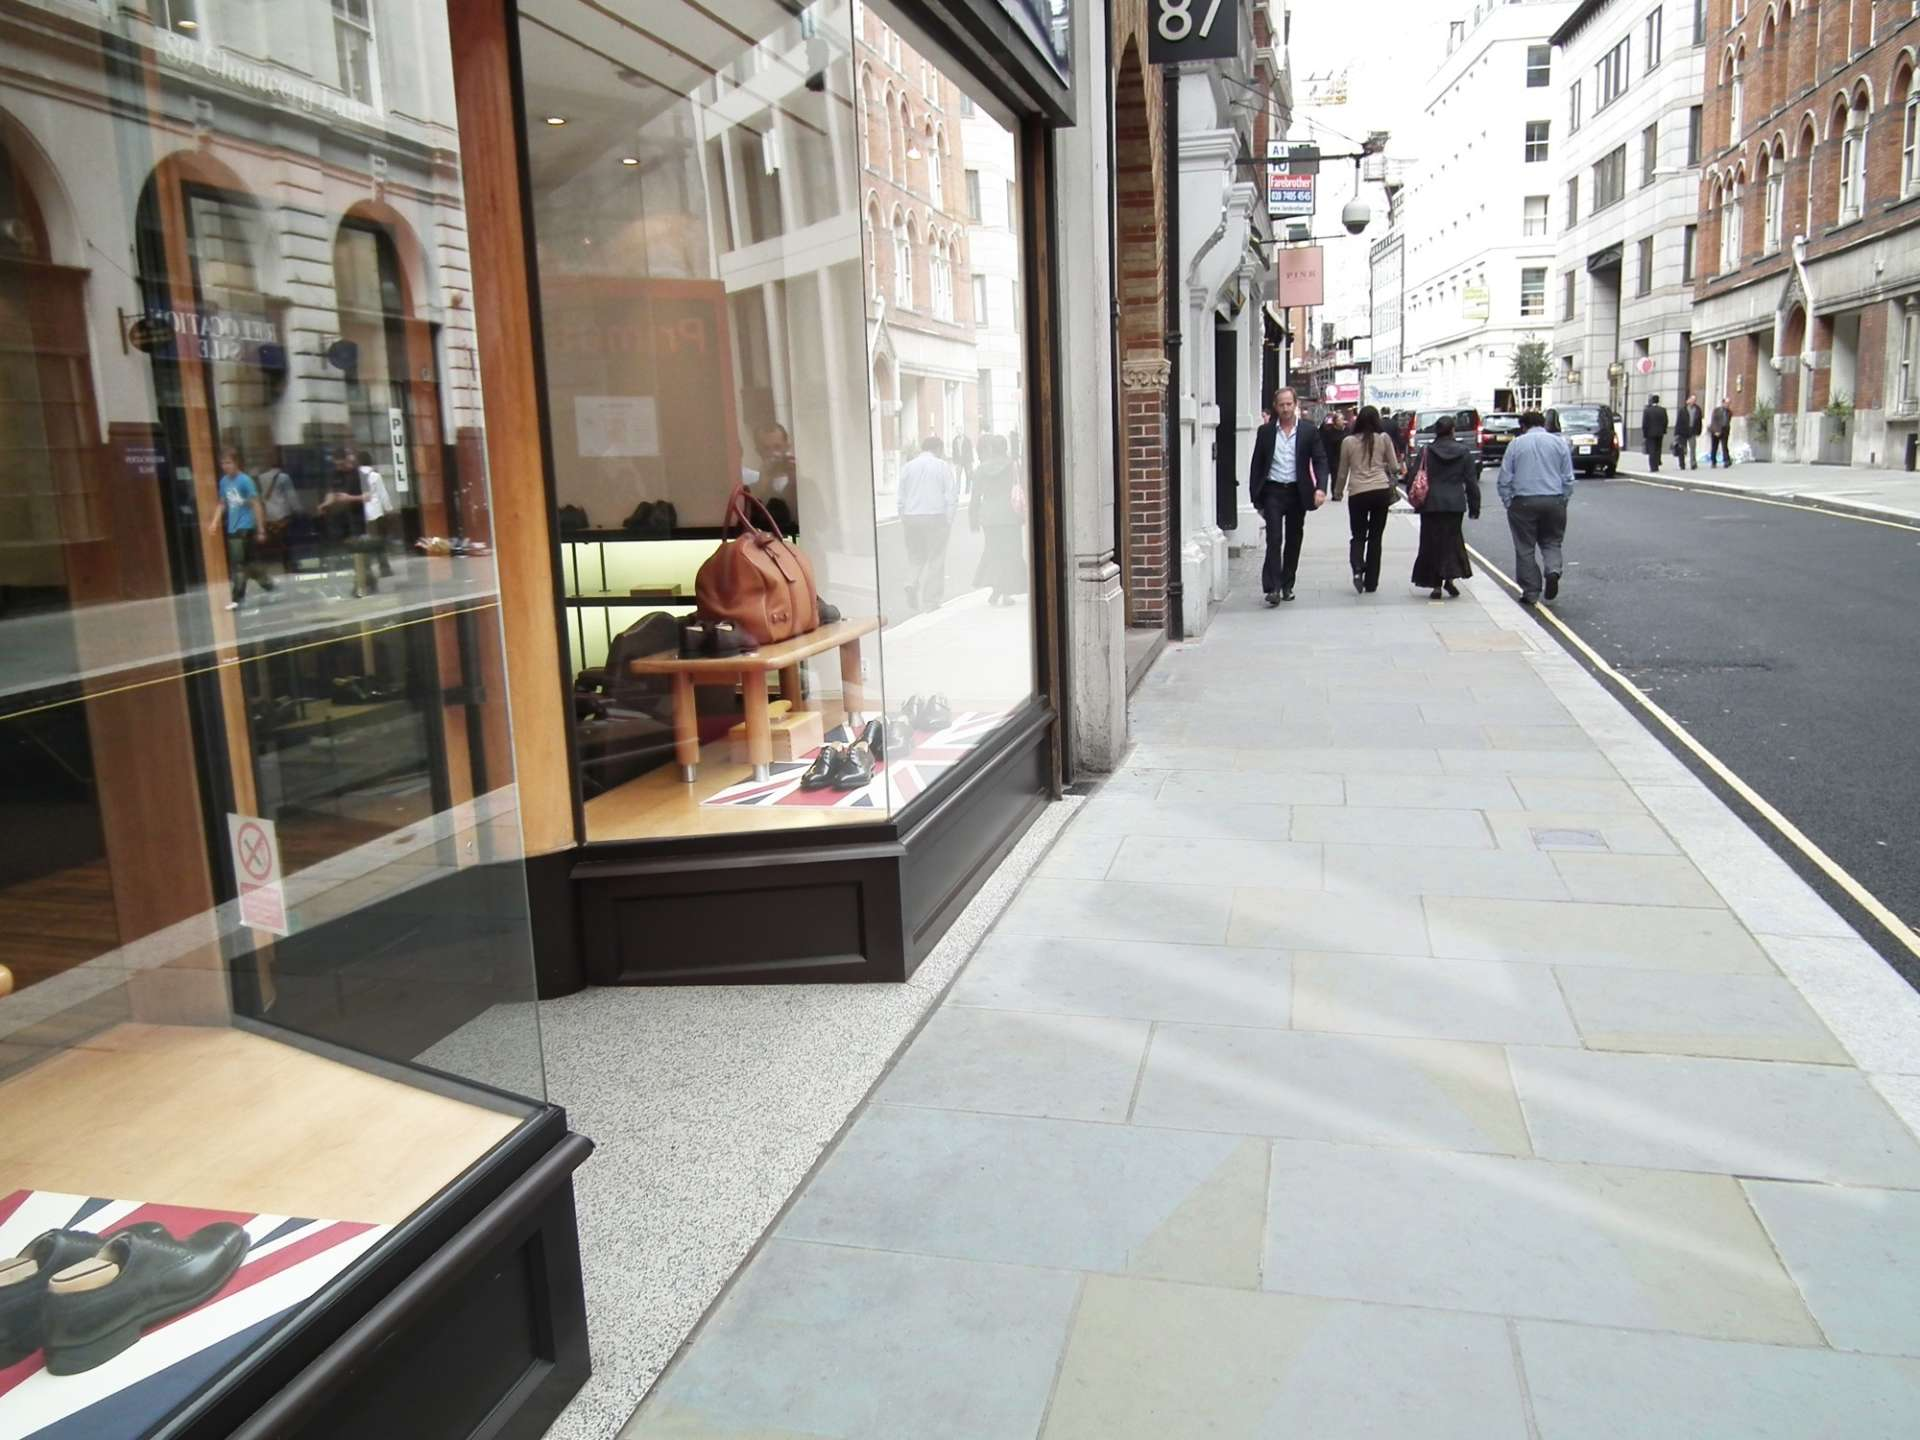 Chancery Lane Urban Design Strategy, City of London